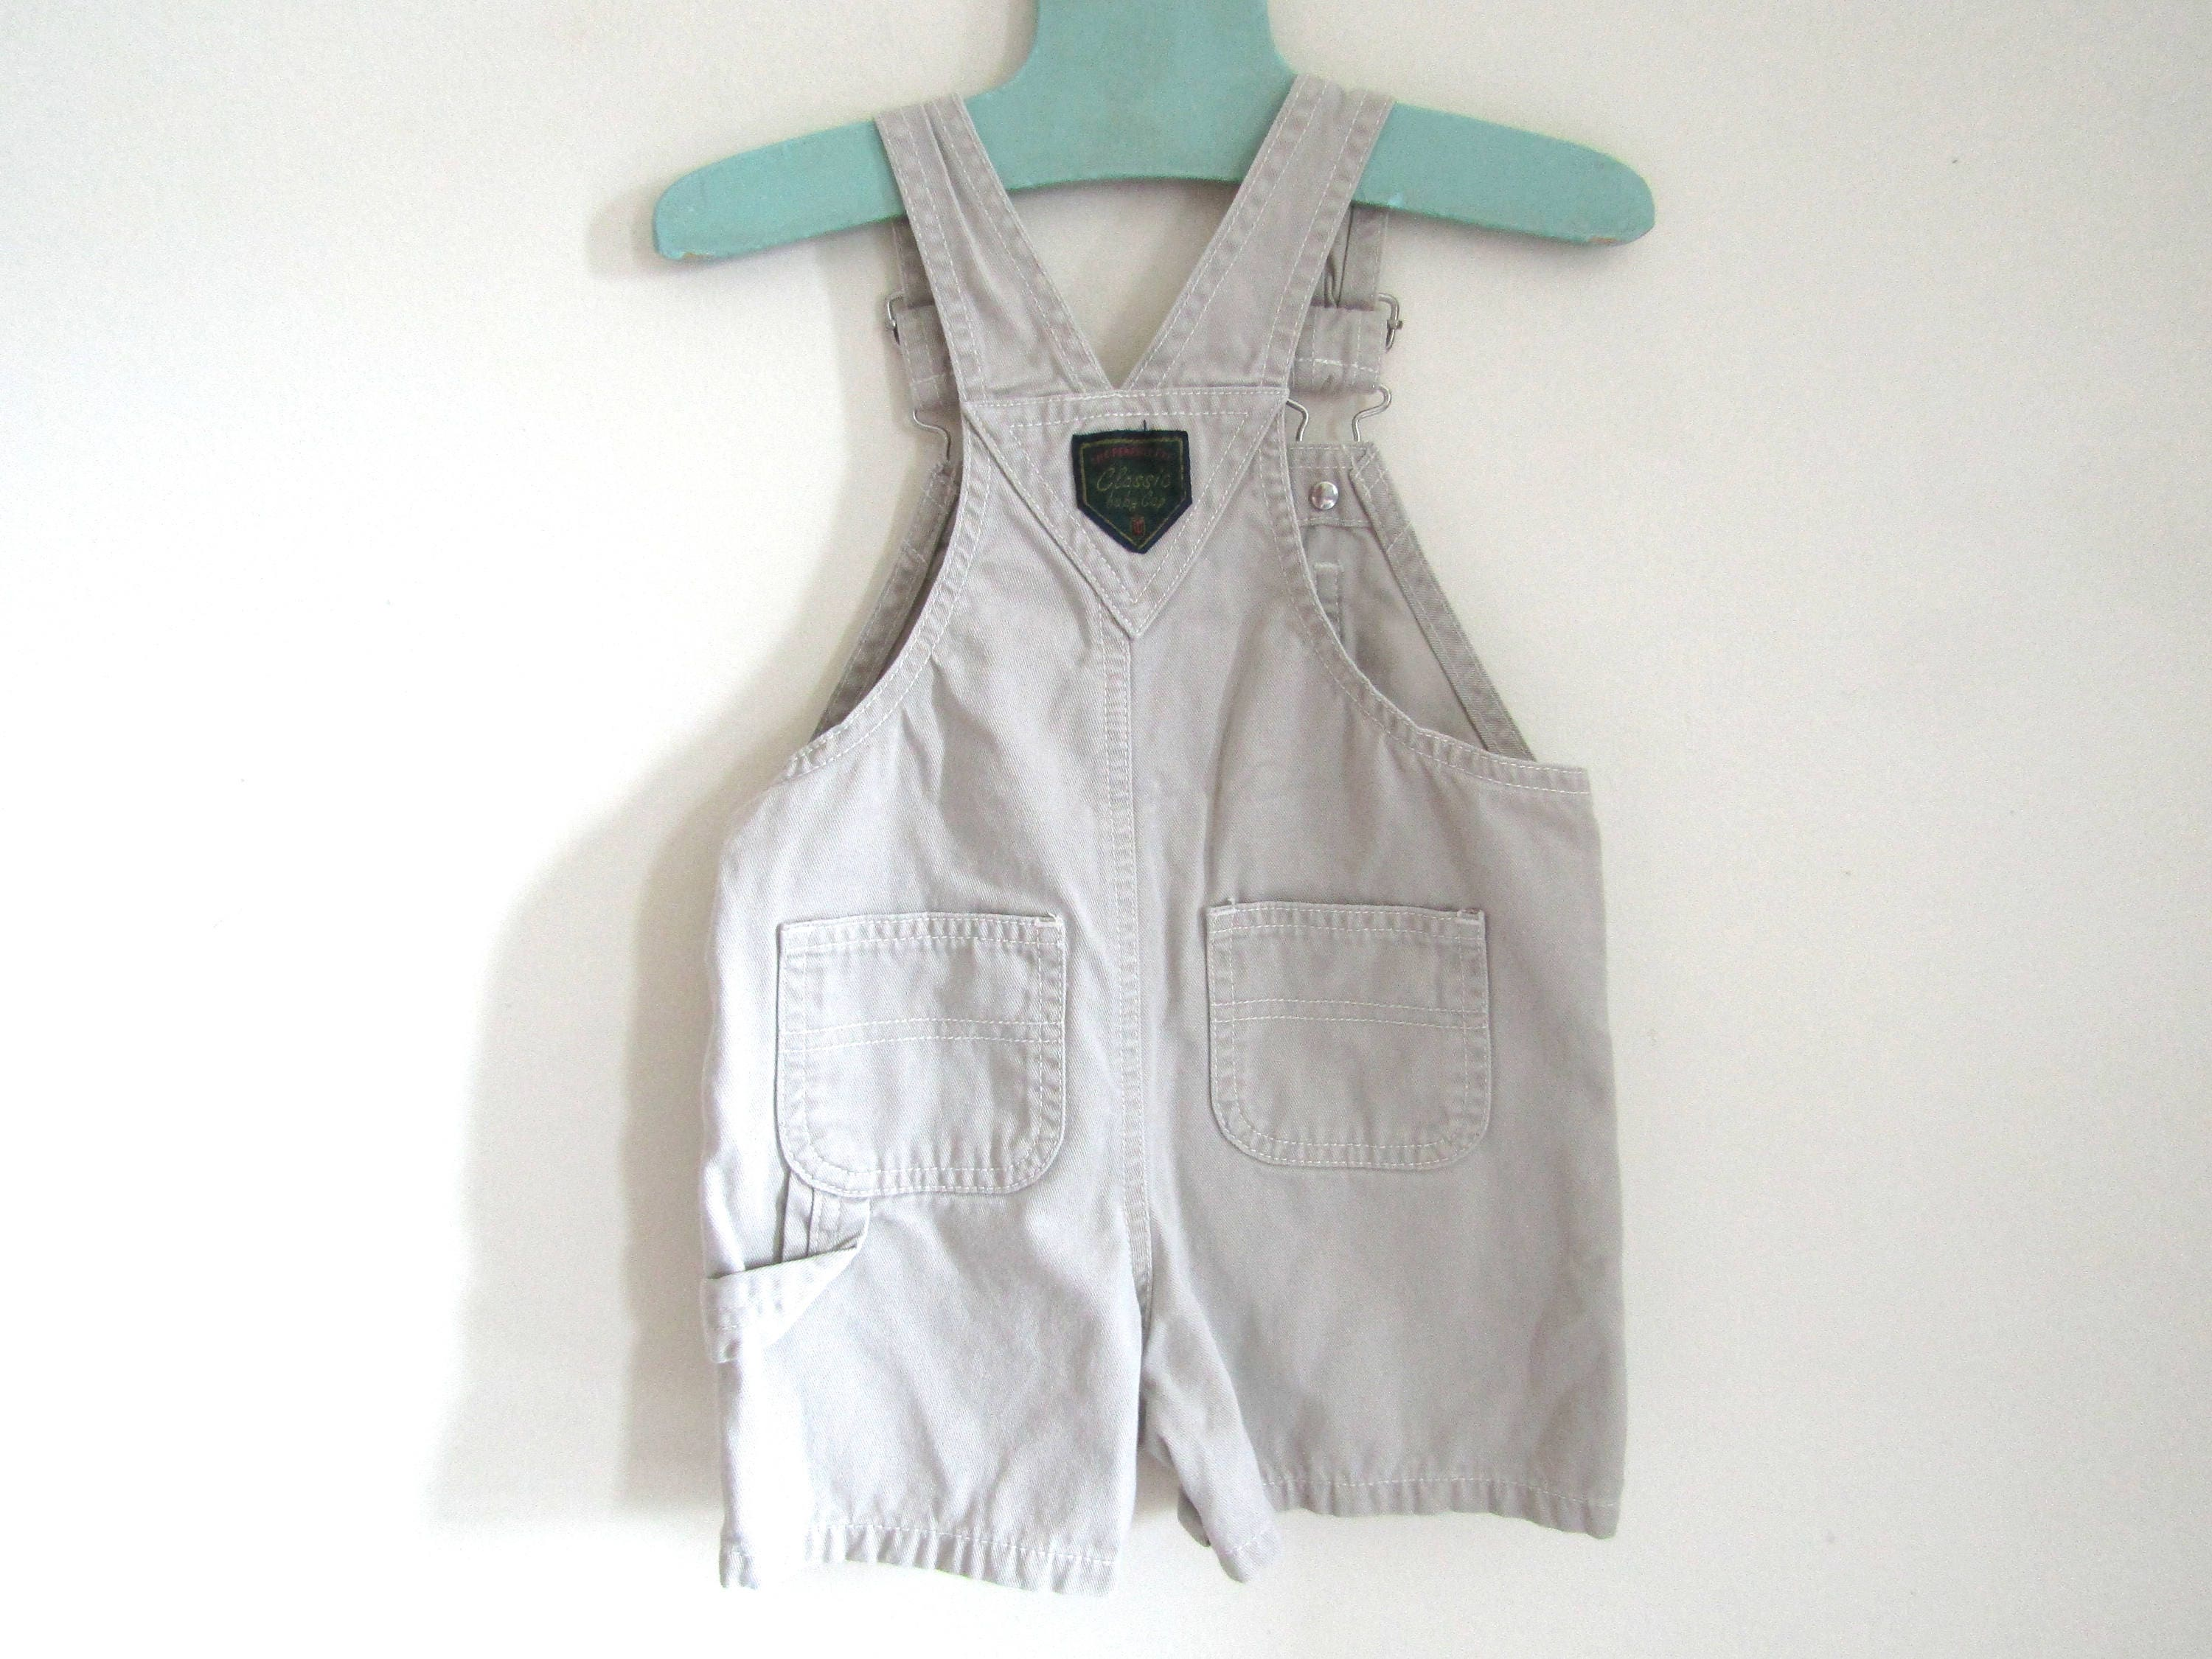 6 12 MOS Baby Gap Khaki Tan Uni Shortalls or Overalls Shorts